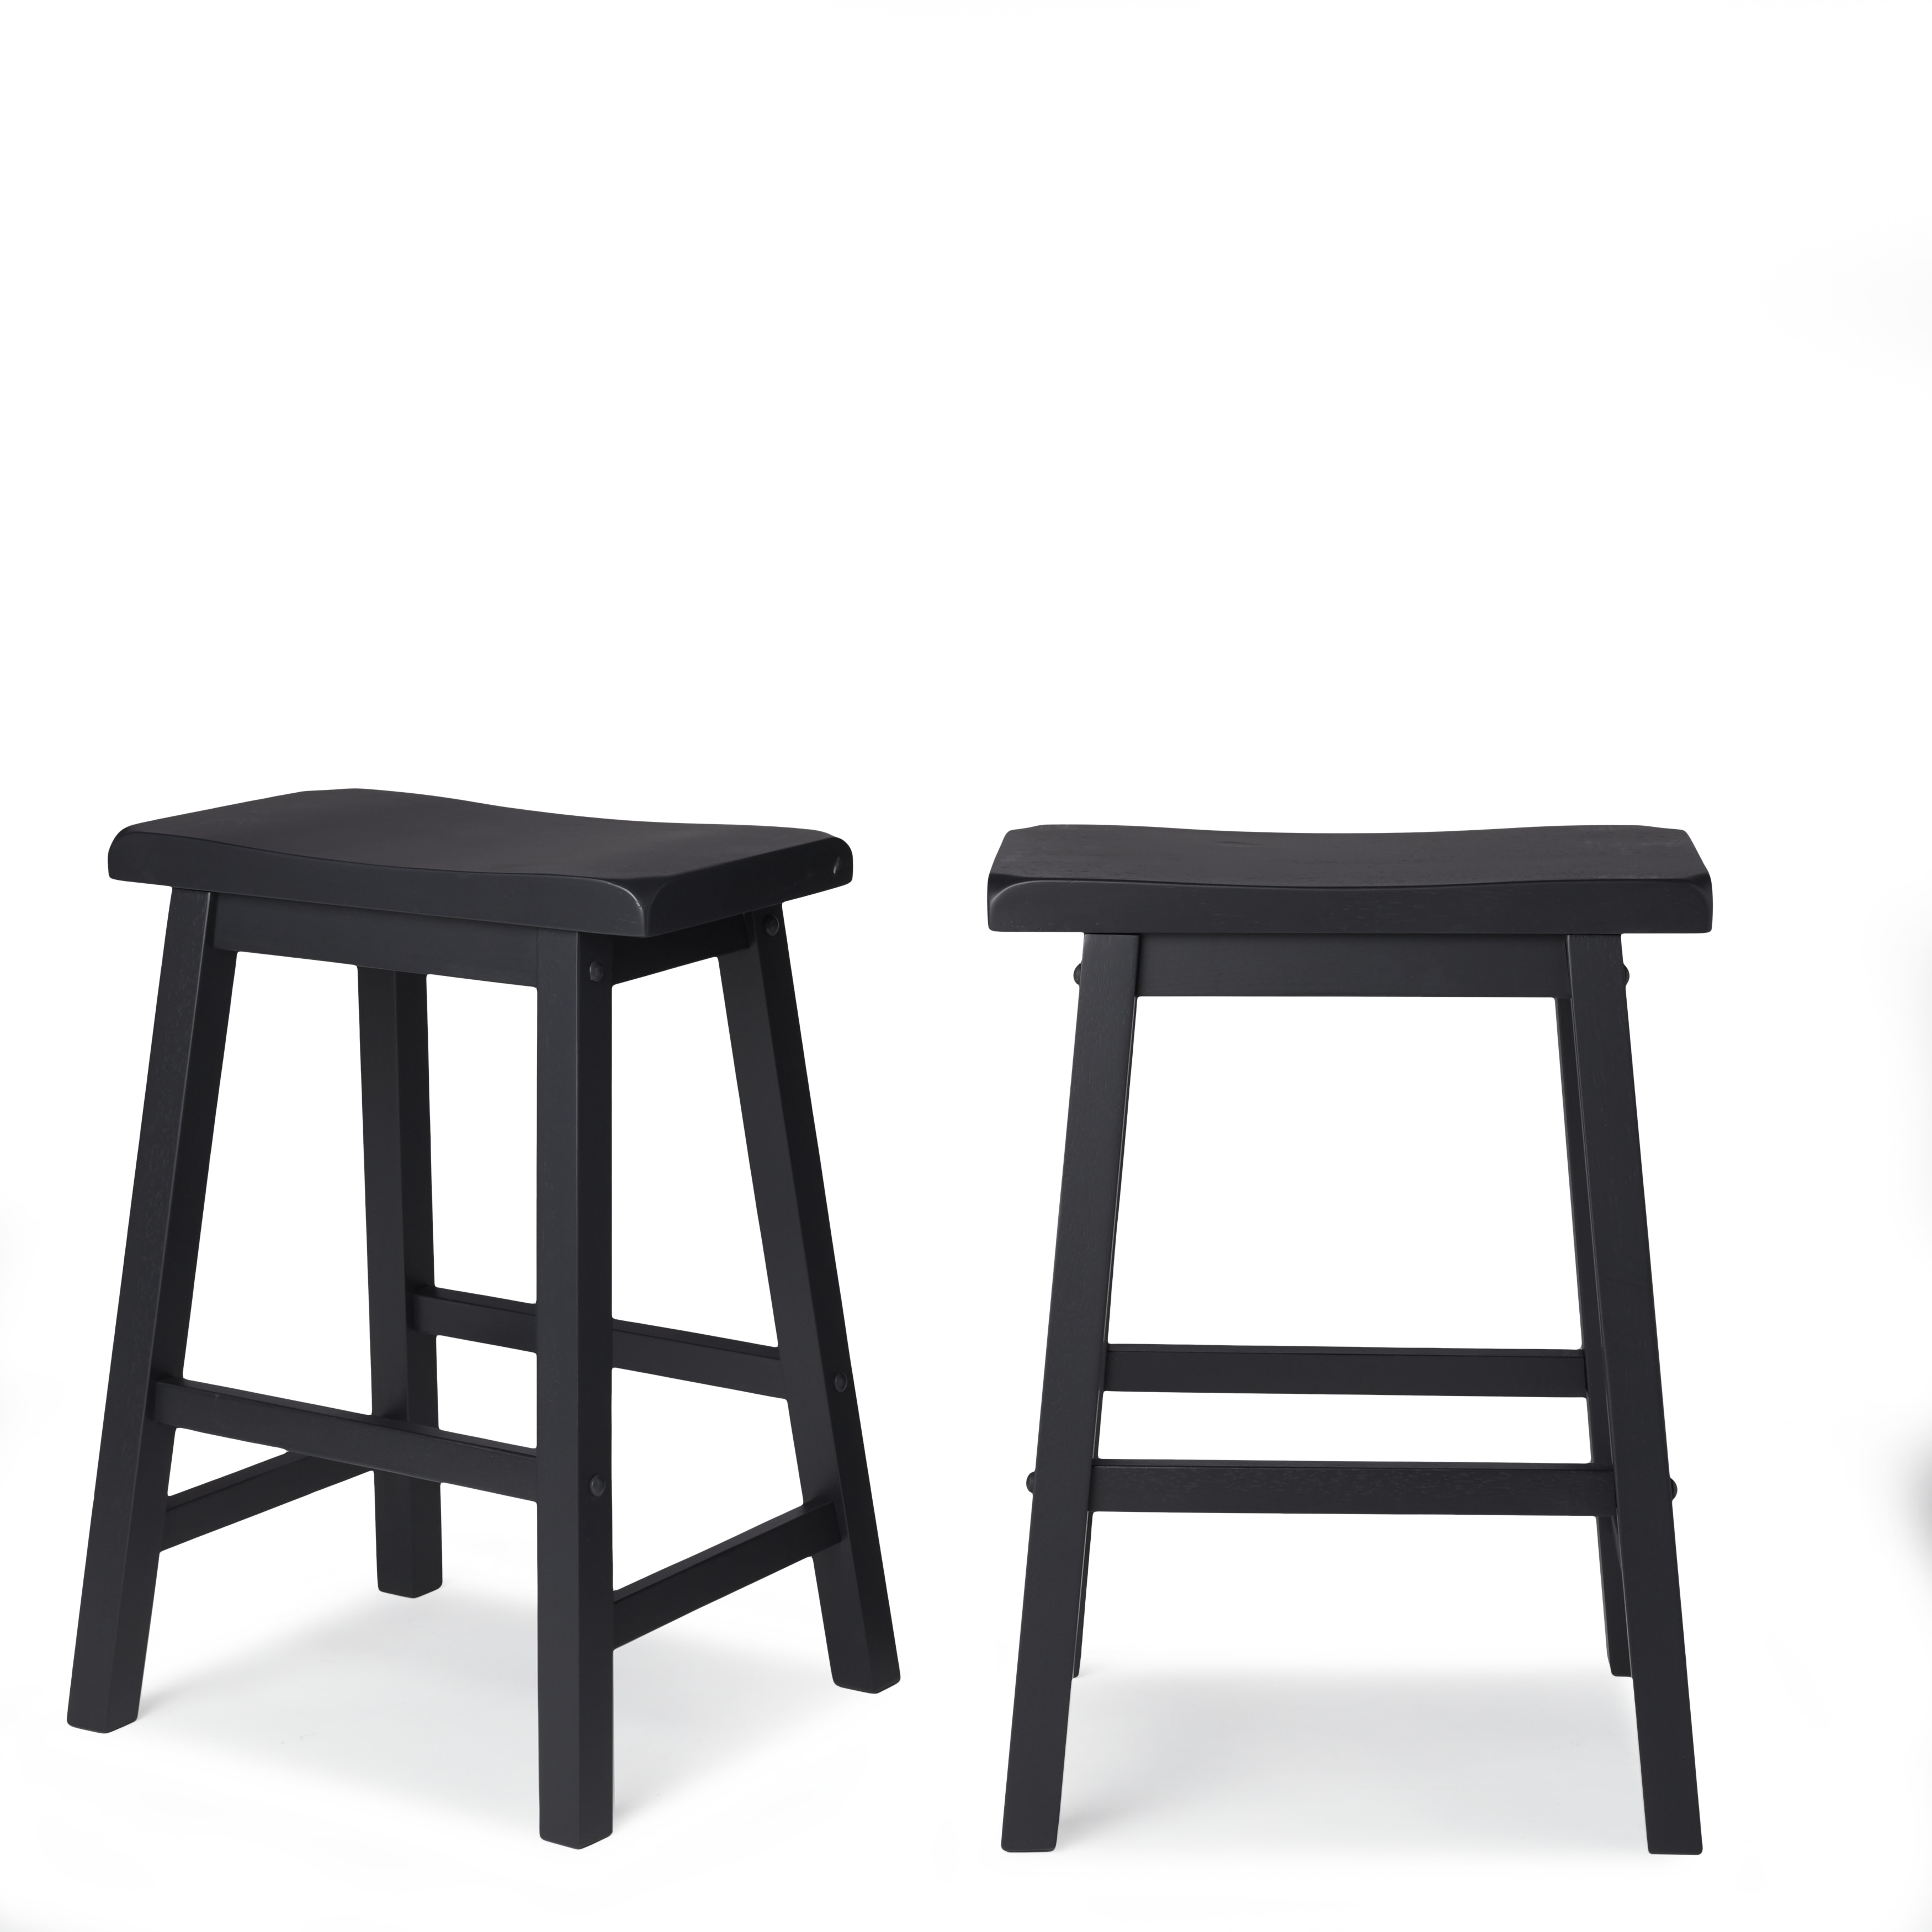 What Height Stool For 43 Inch Counter Salvador Saddle Back